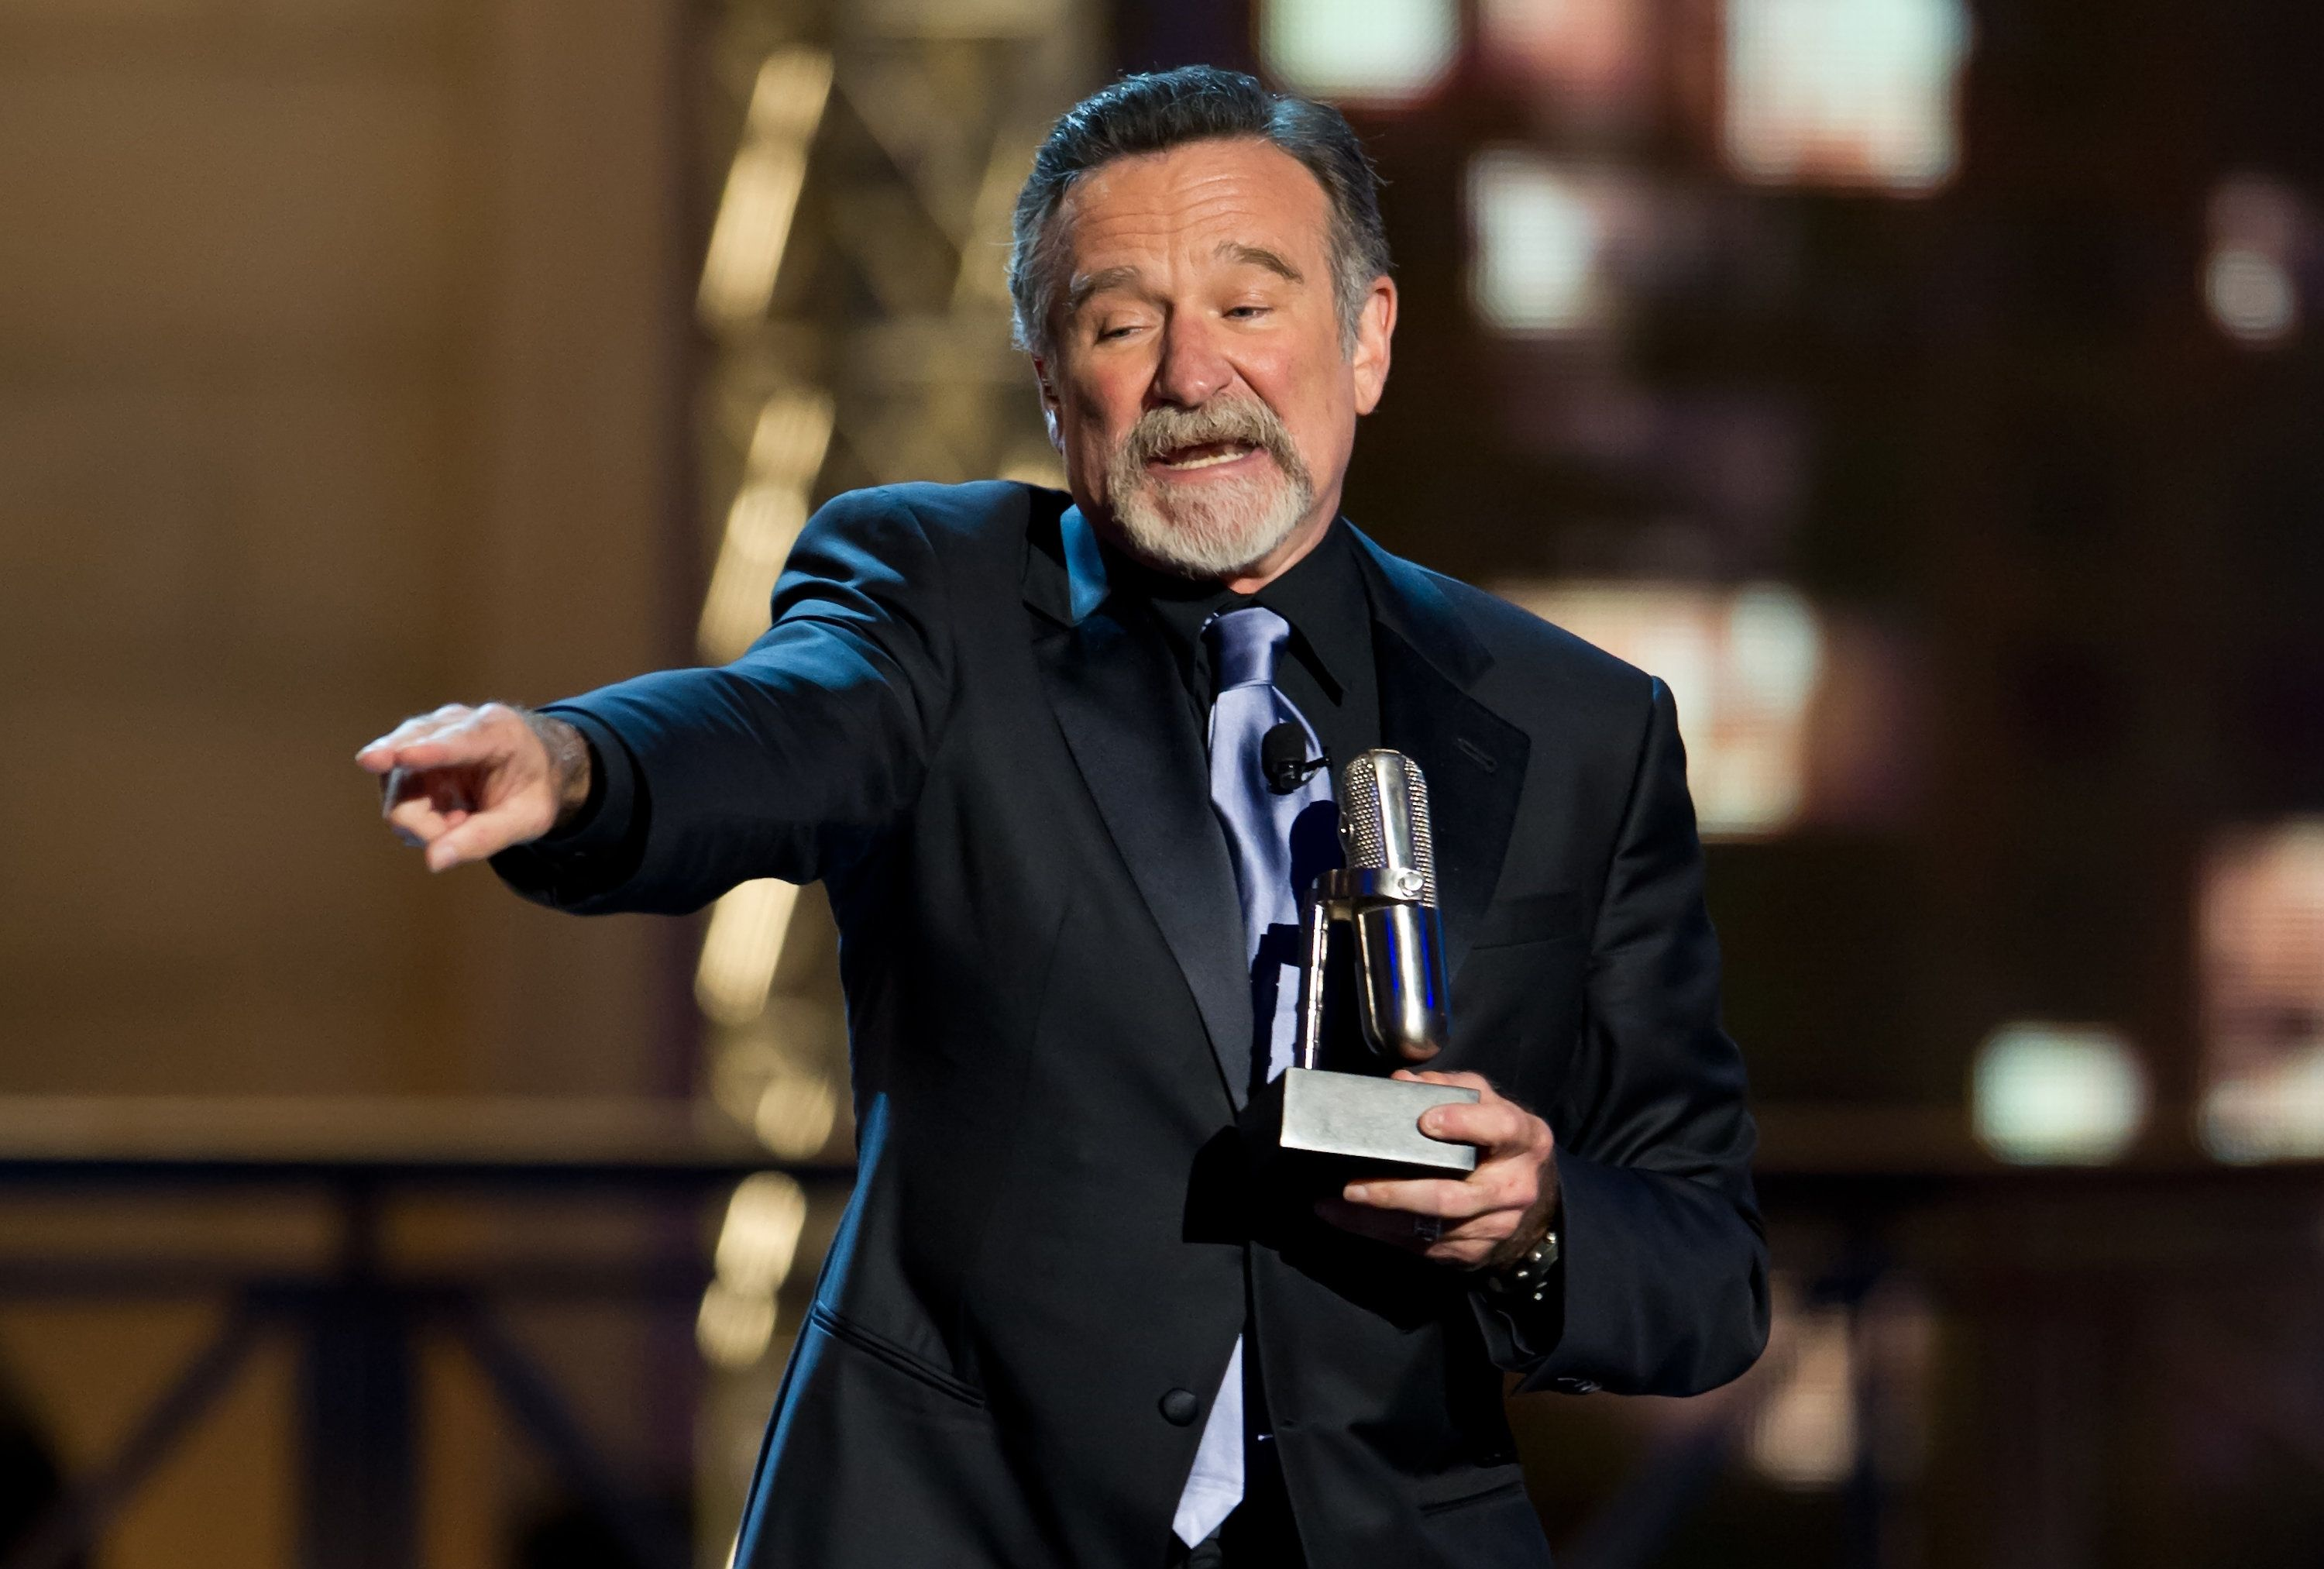 Robin Williams, accepting a comedy award in 2012. According to a new biography, he cried uncontrollably during film